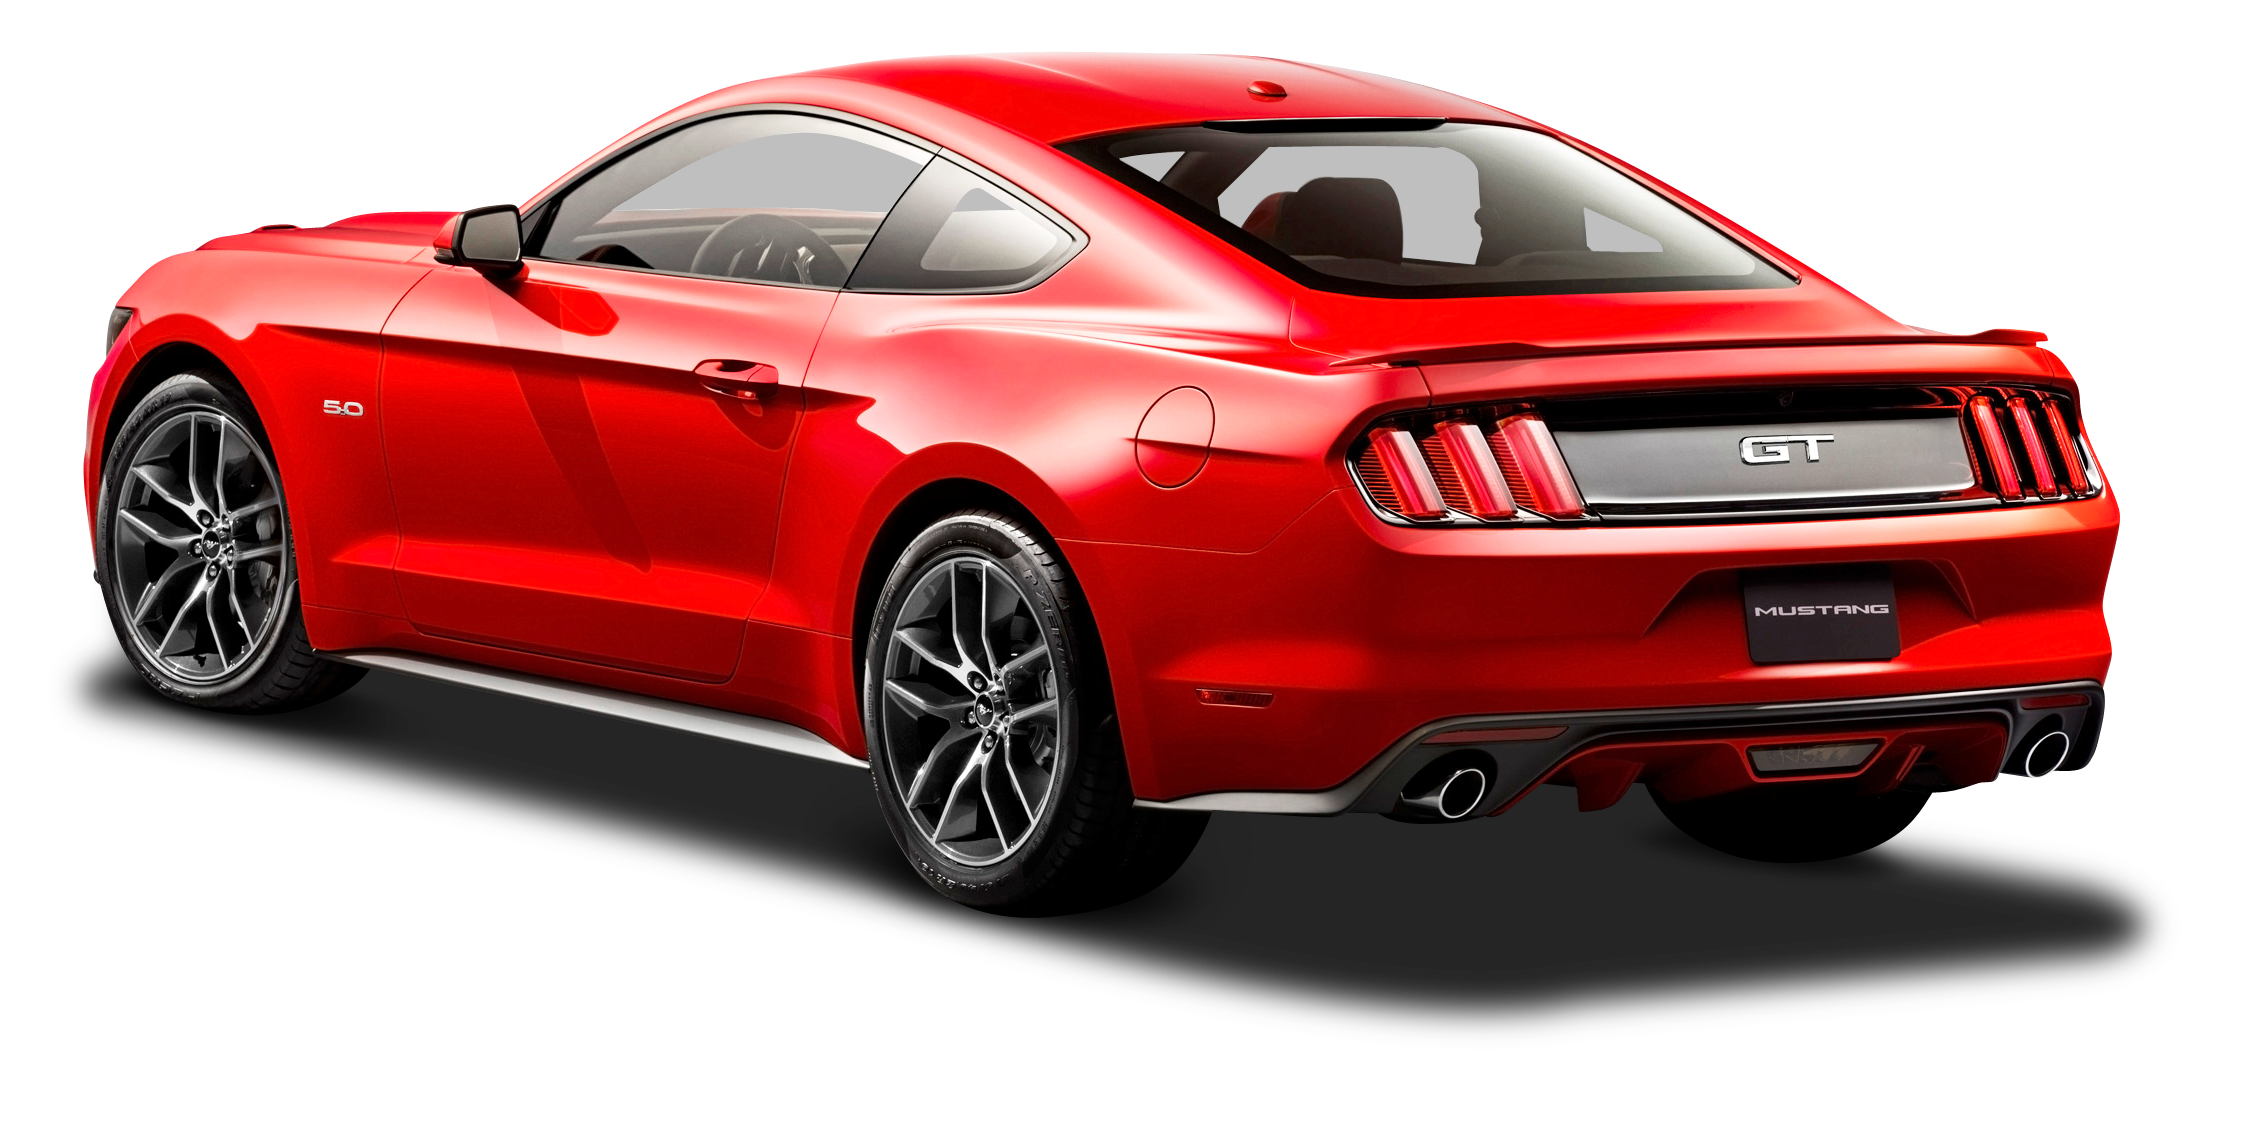 Ford Mustang Red Car Back Side Png Image Ford Mustang Red Car Mustang